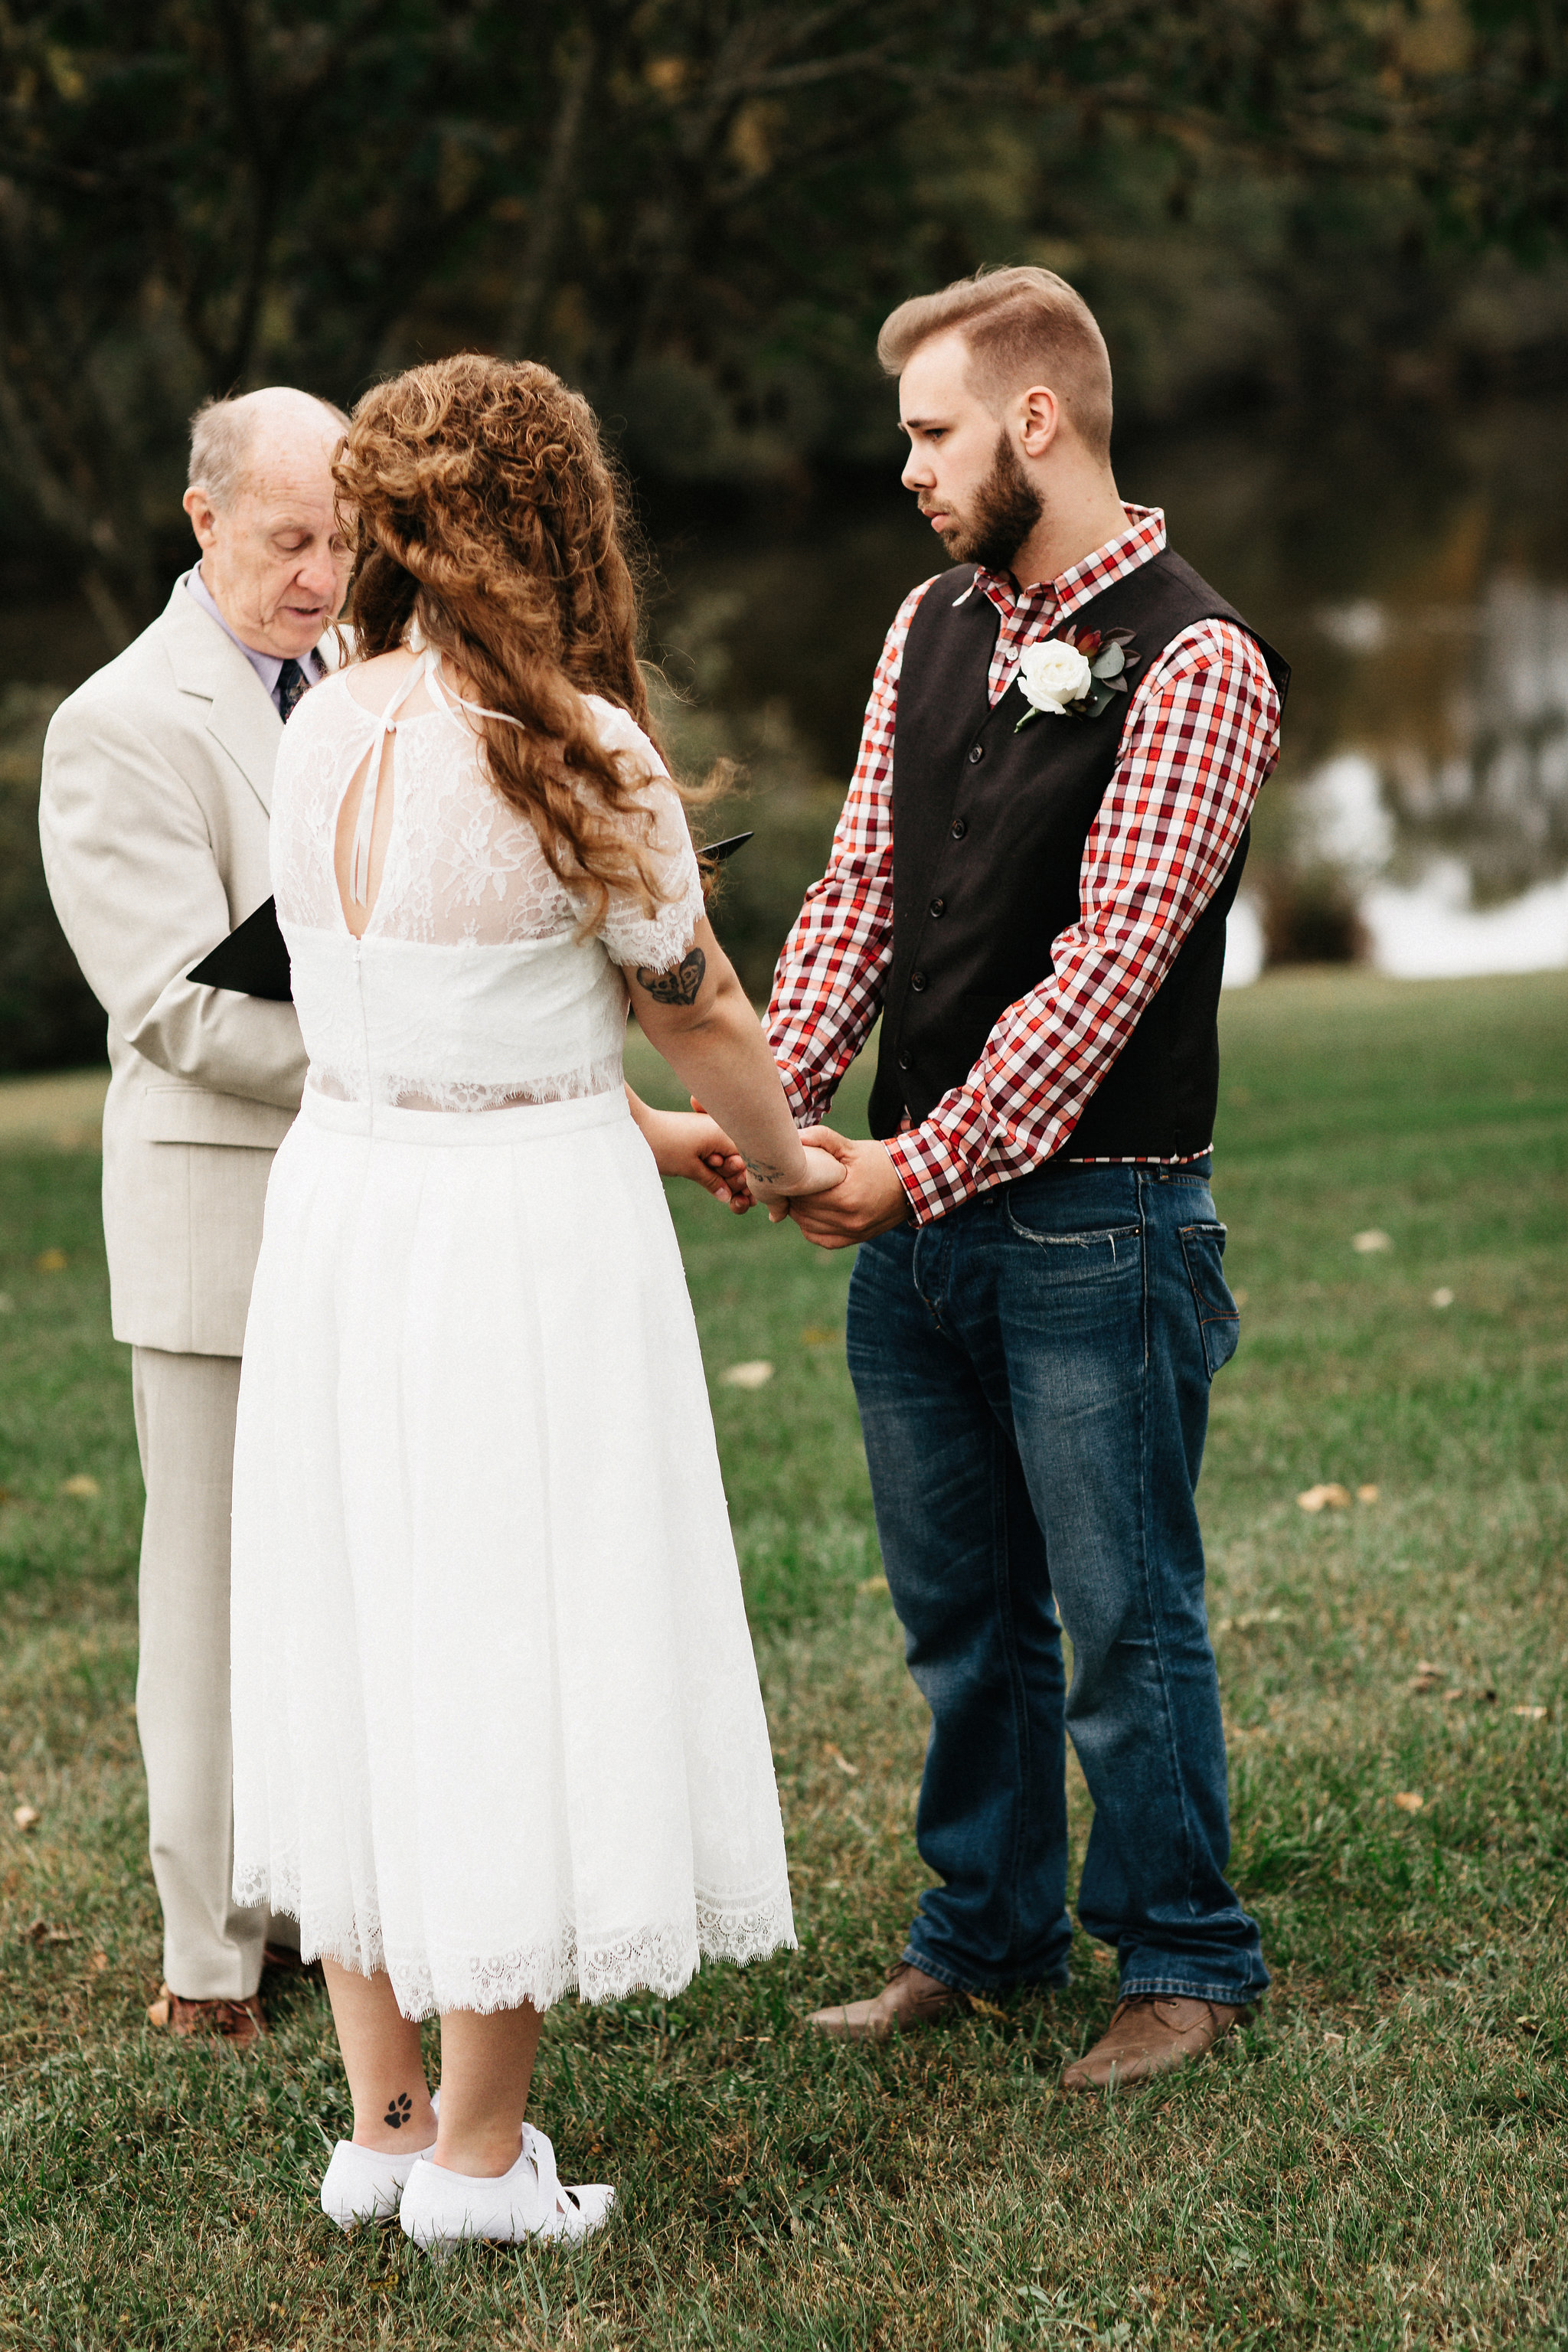 Caitlin&CodyMarried2017-11-03at19.19.37PM36.jpg